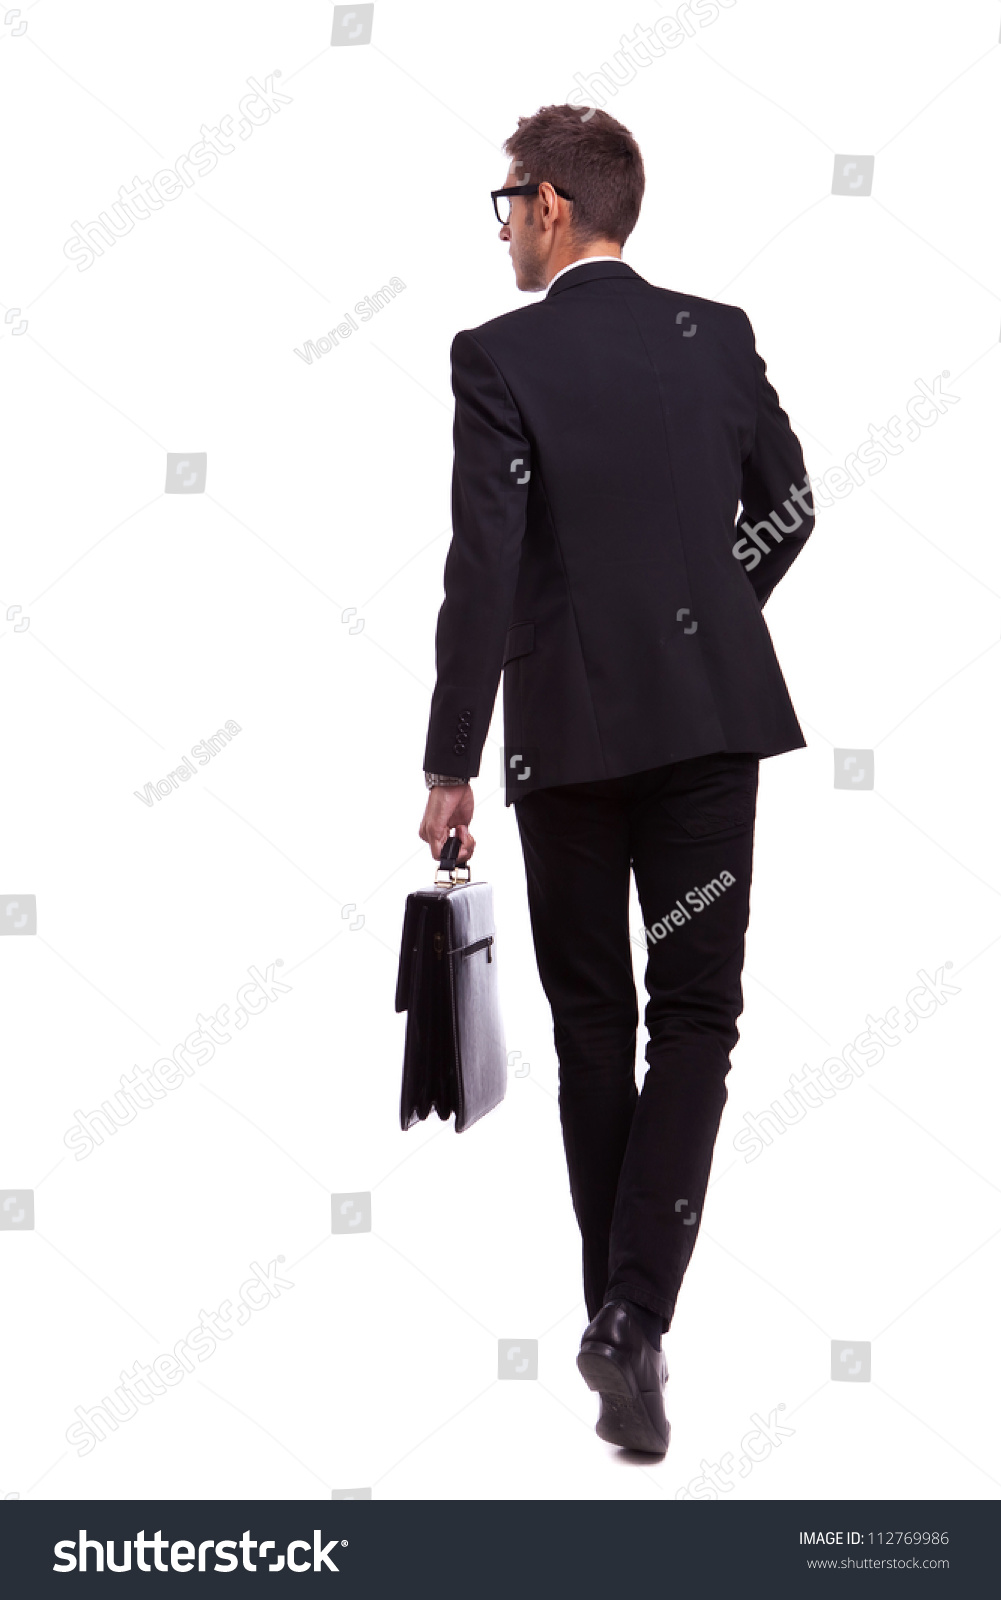 Back View Walking Business Man Holding Stock Photo ...